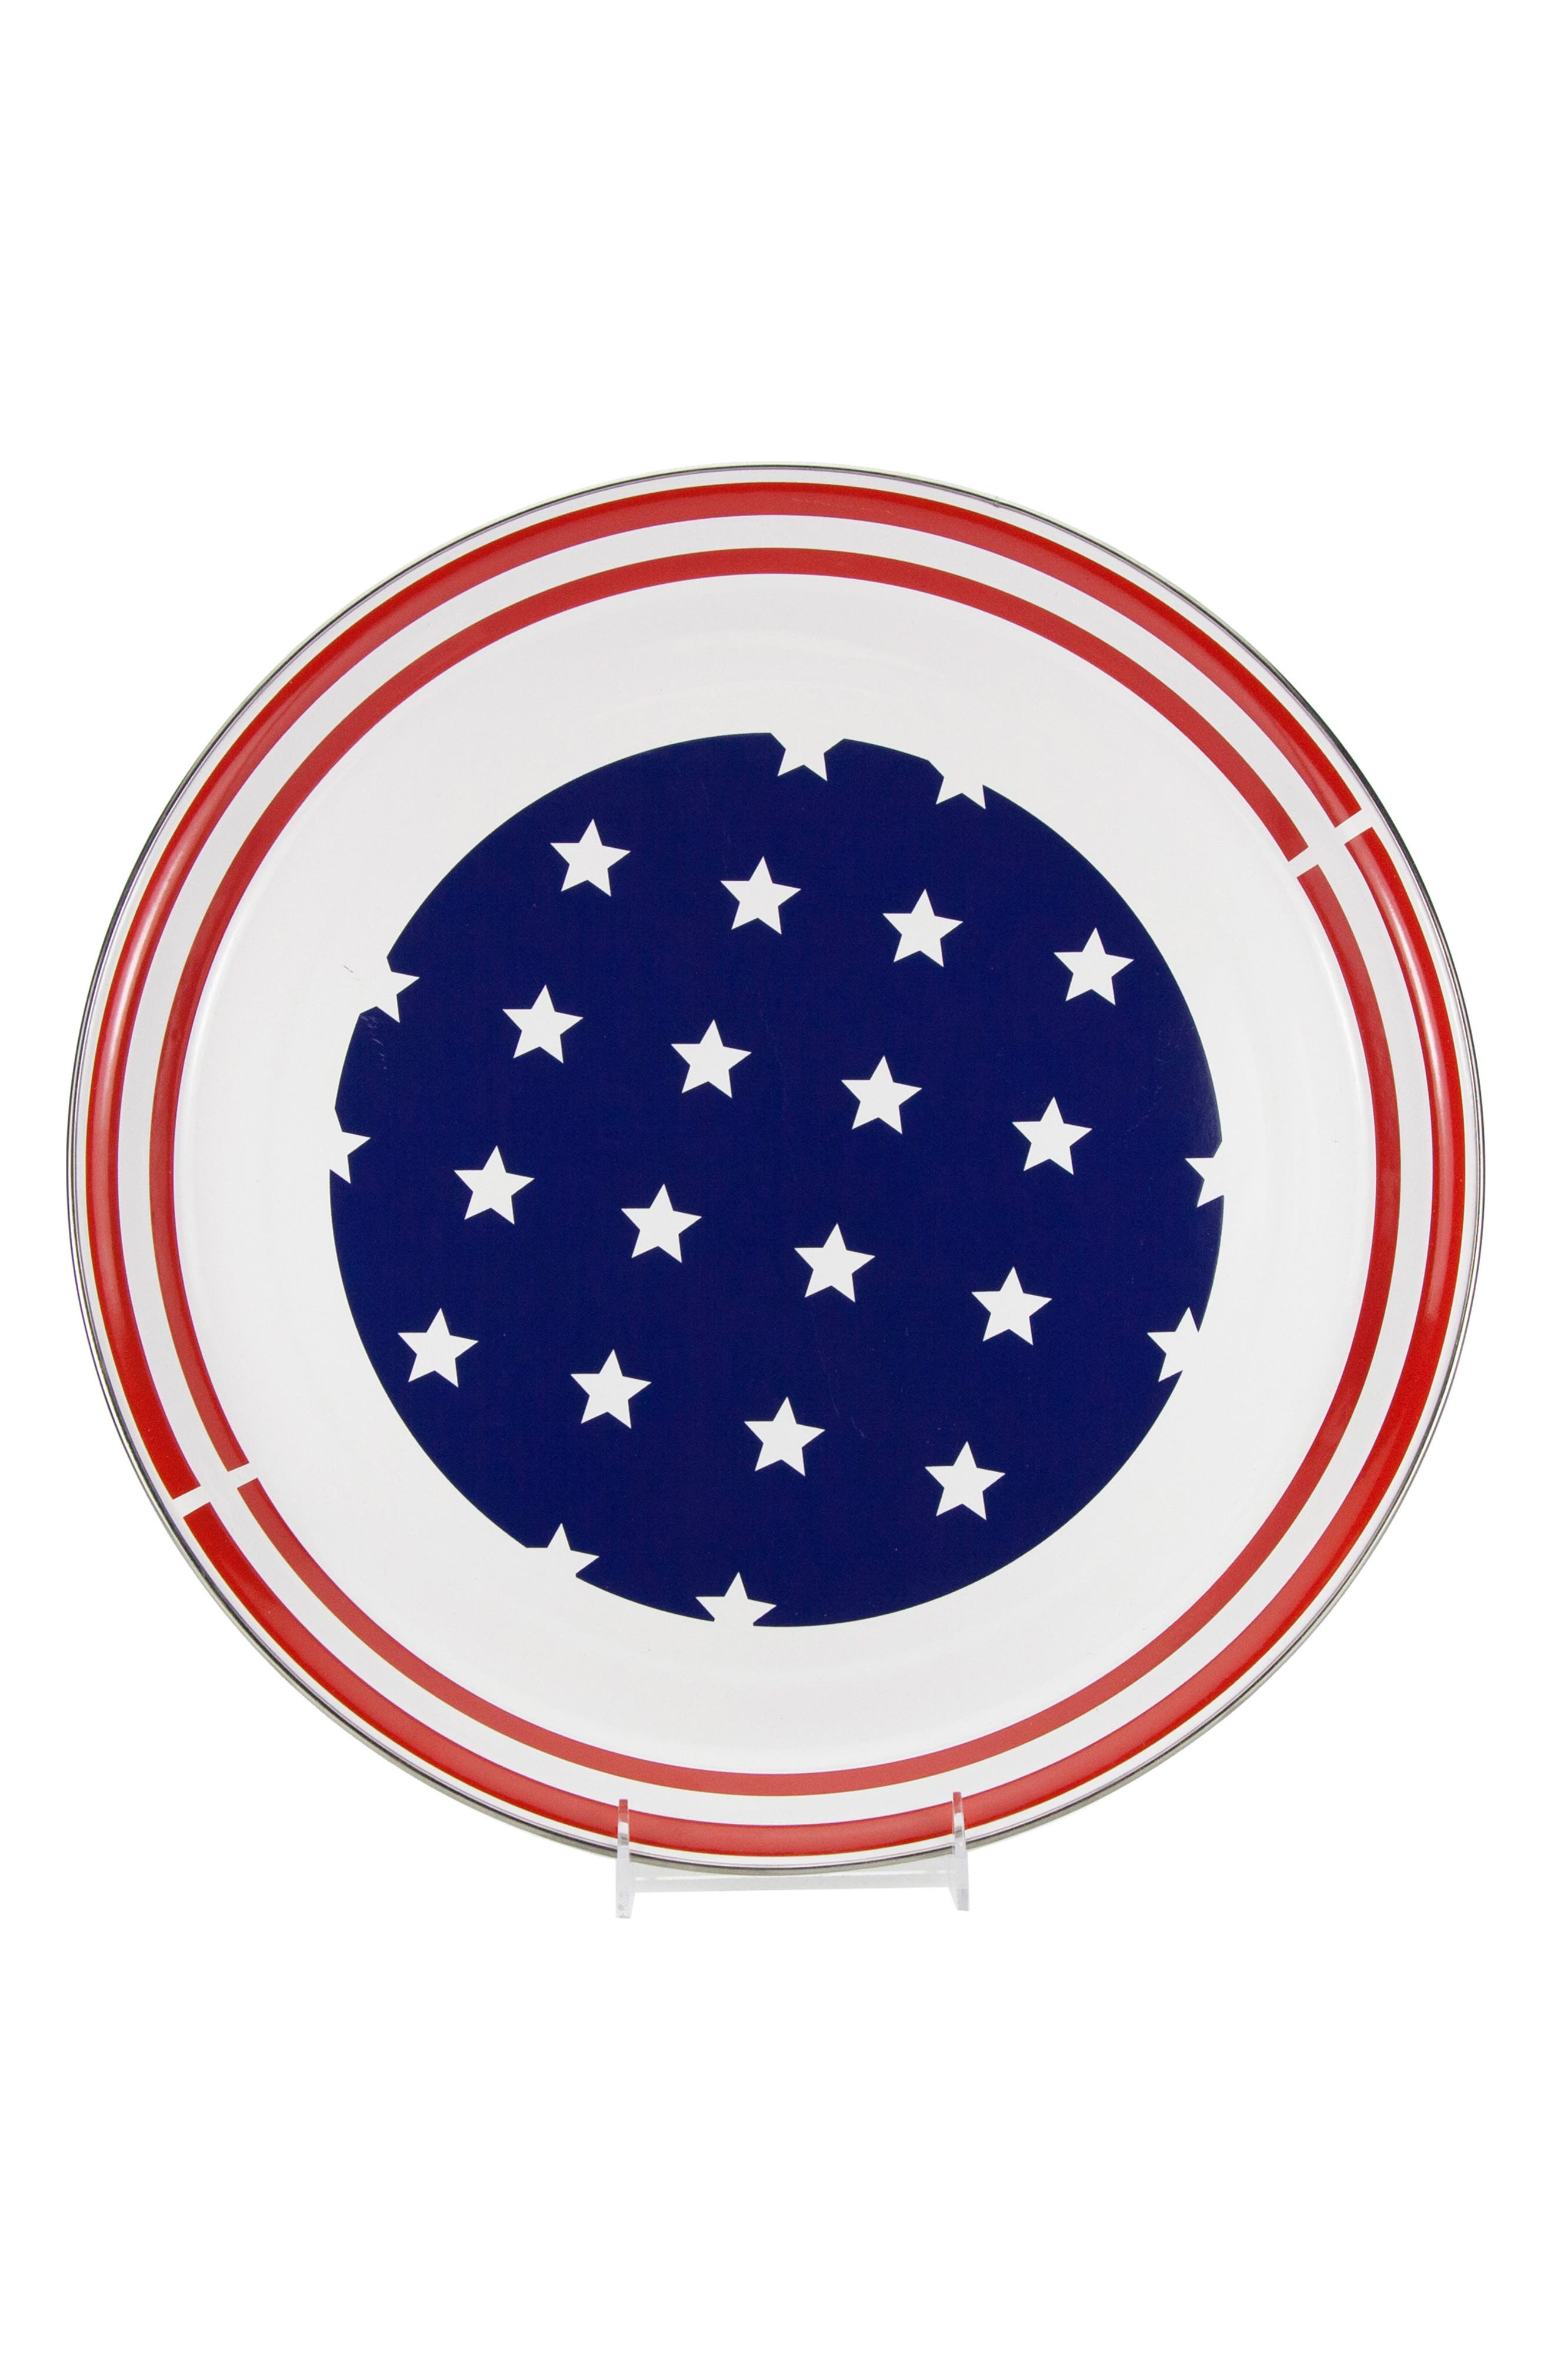 Stars & Stripes Serving Tray,                         Main,                         color, STARS AND STRIPES